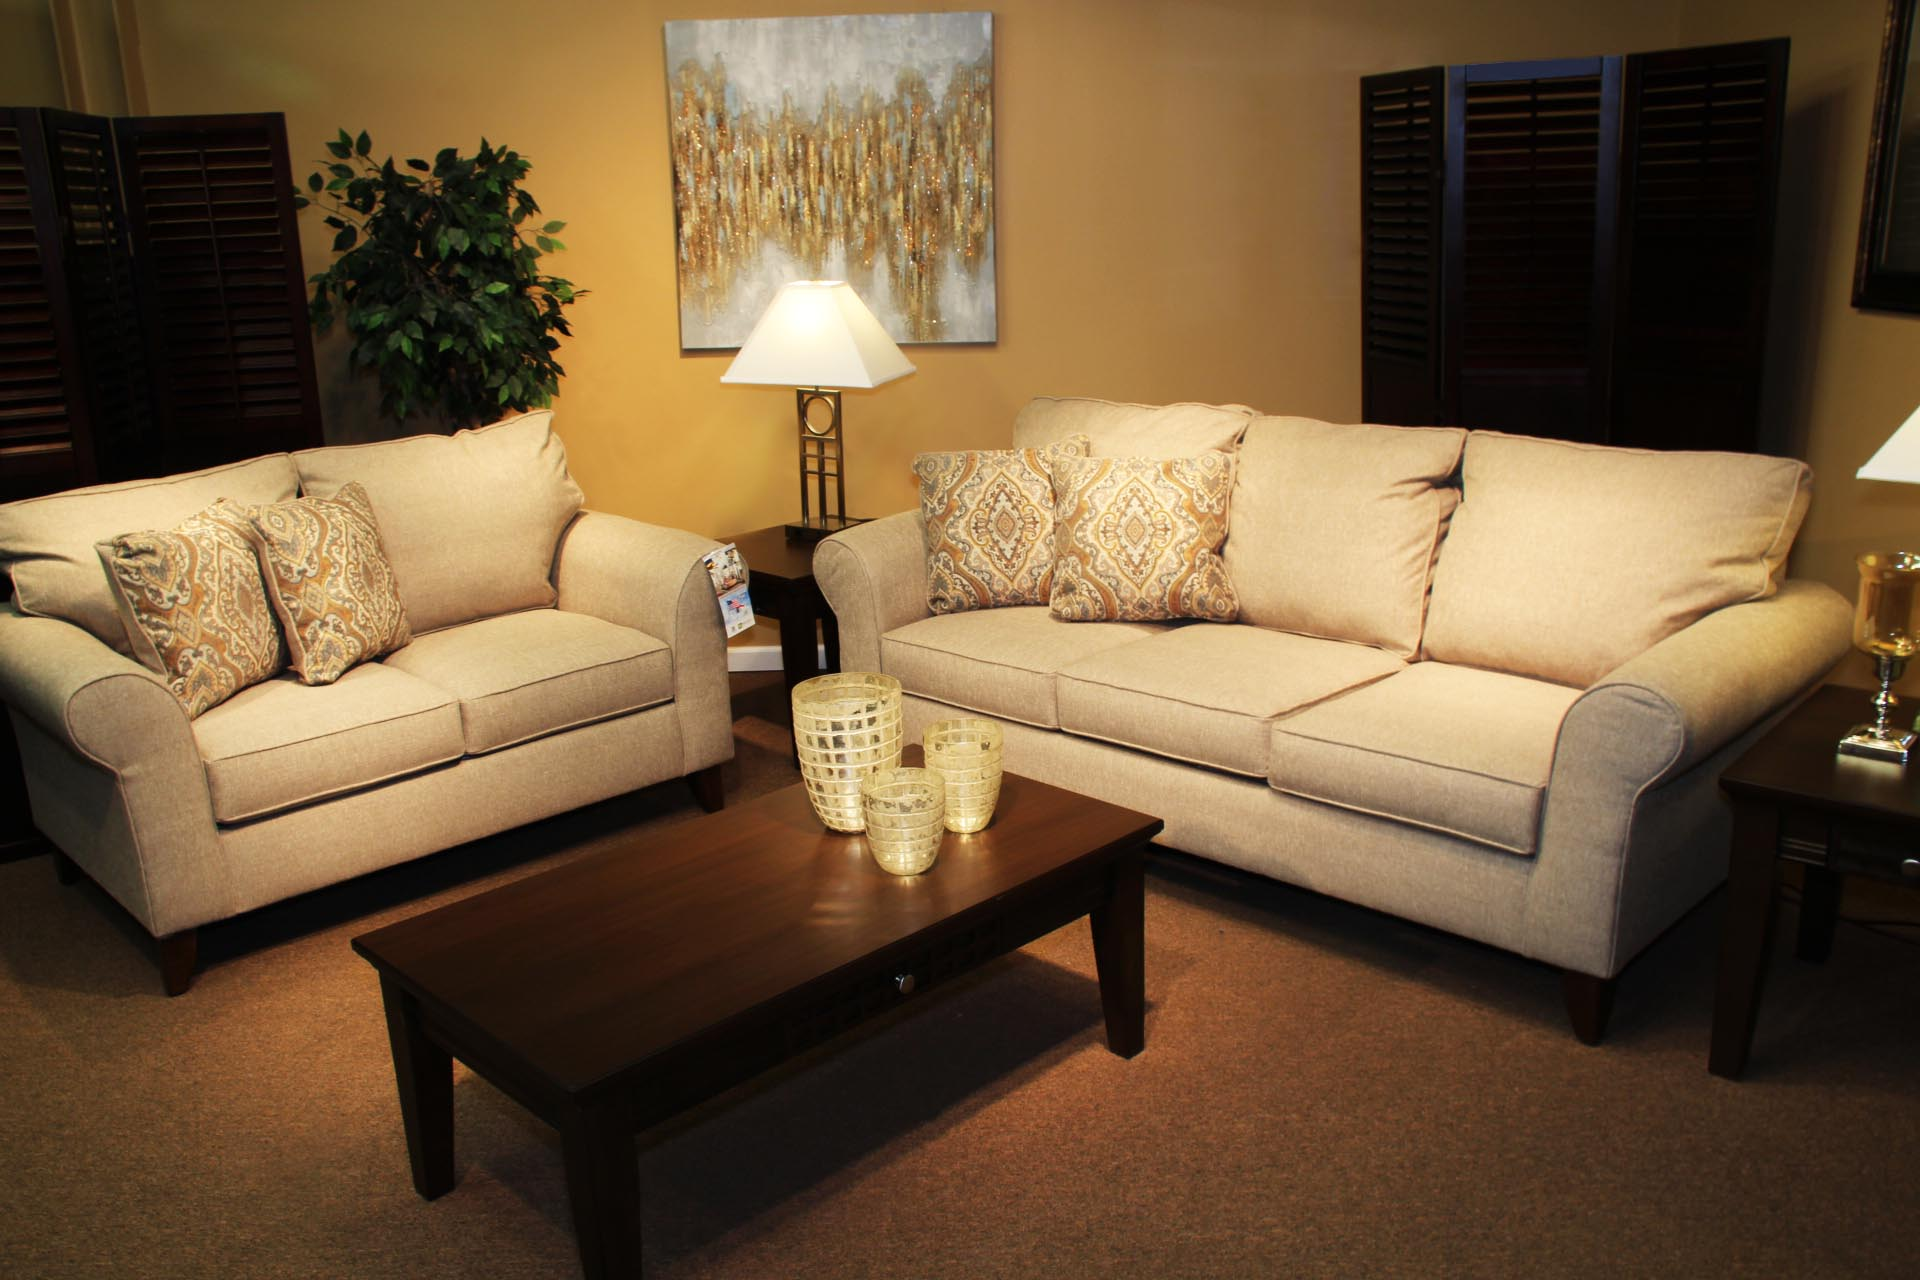 Pittsburgh Furniture living room set example